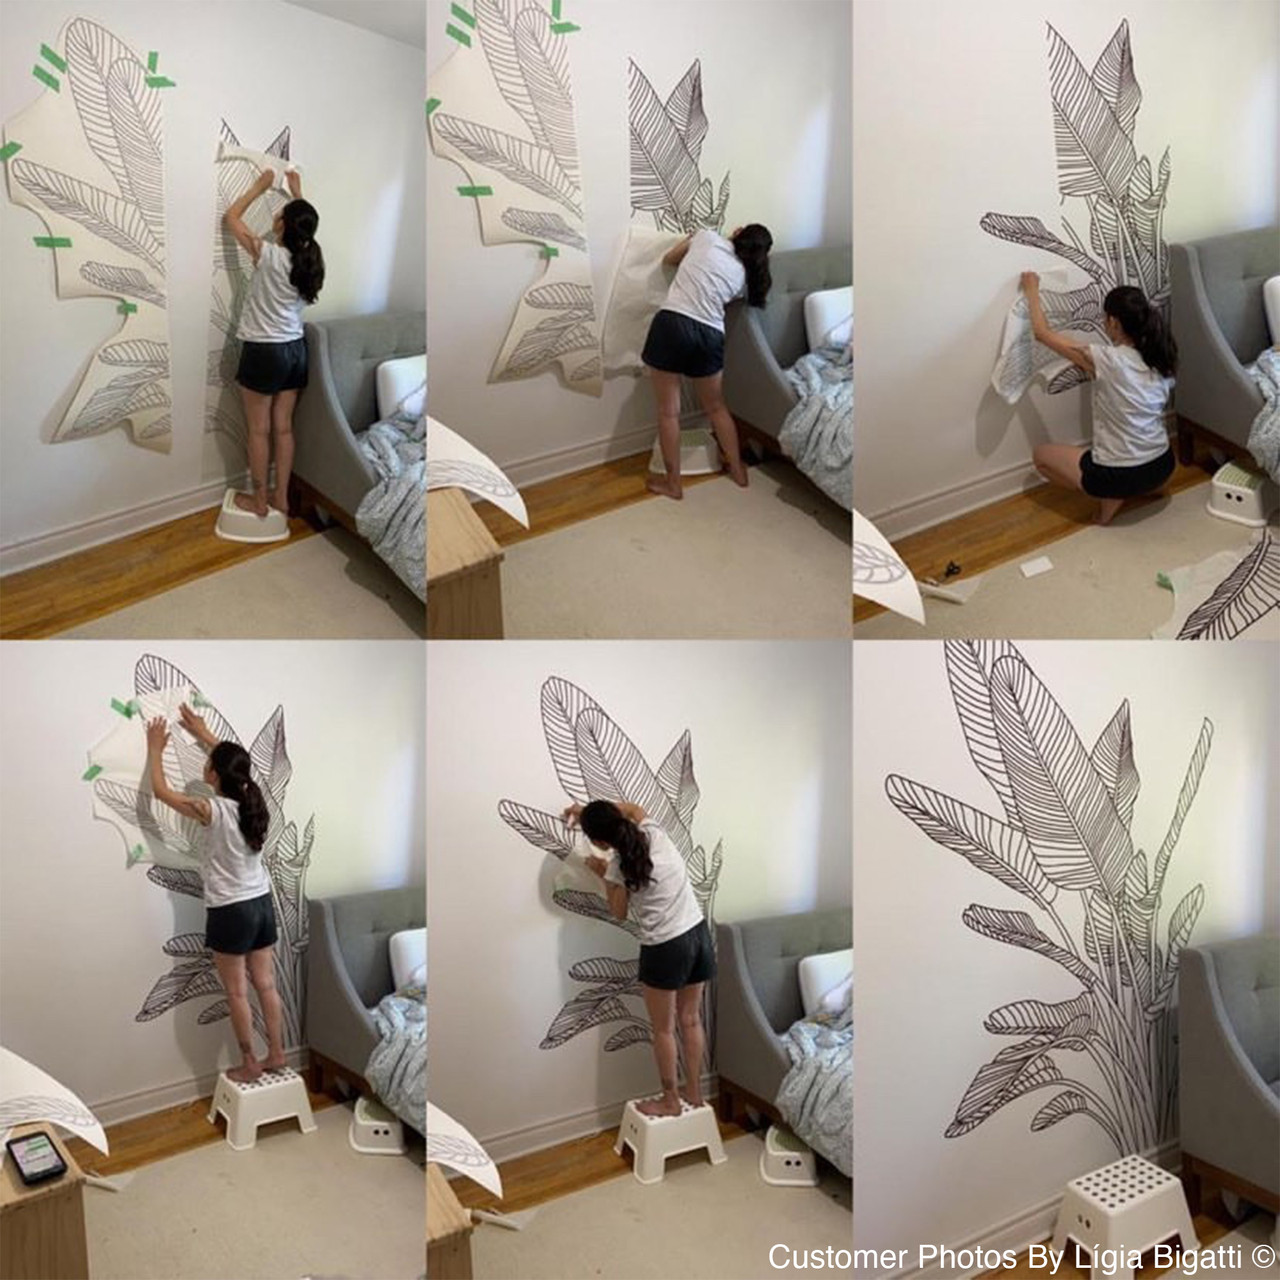 Customer photo series of the Bird of Paradise wall decal in brown color, being DIY installed in their home.